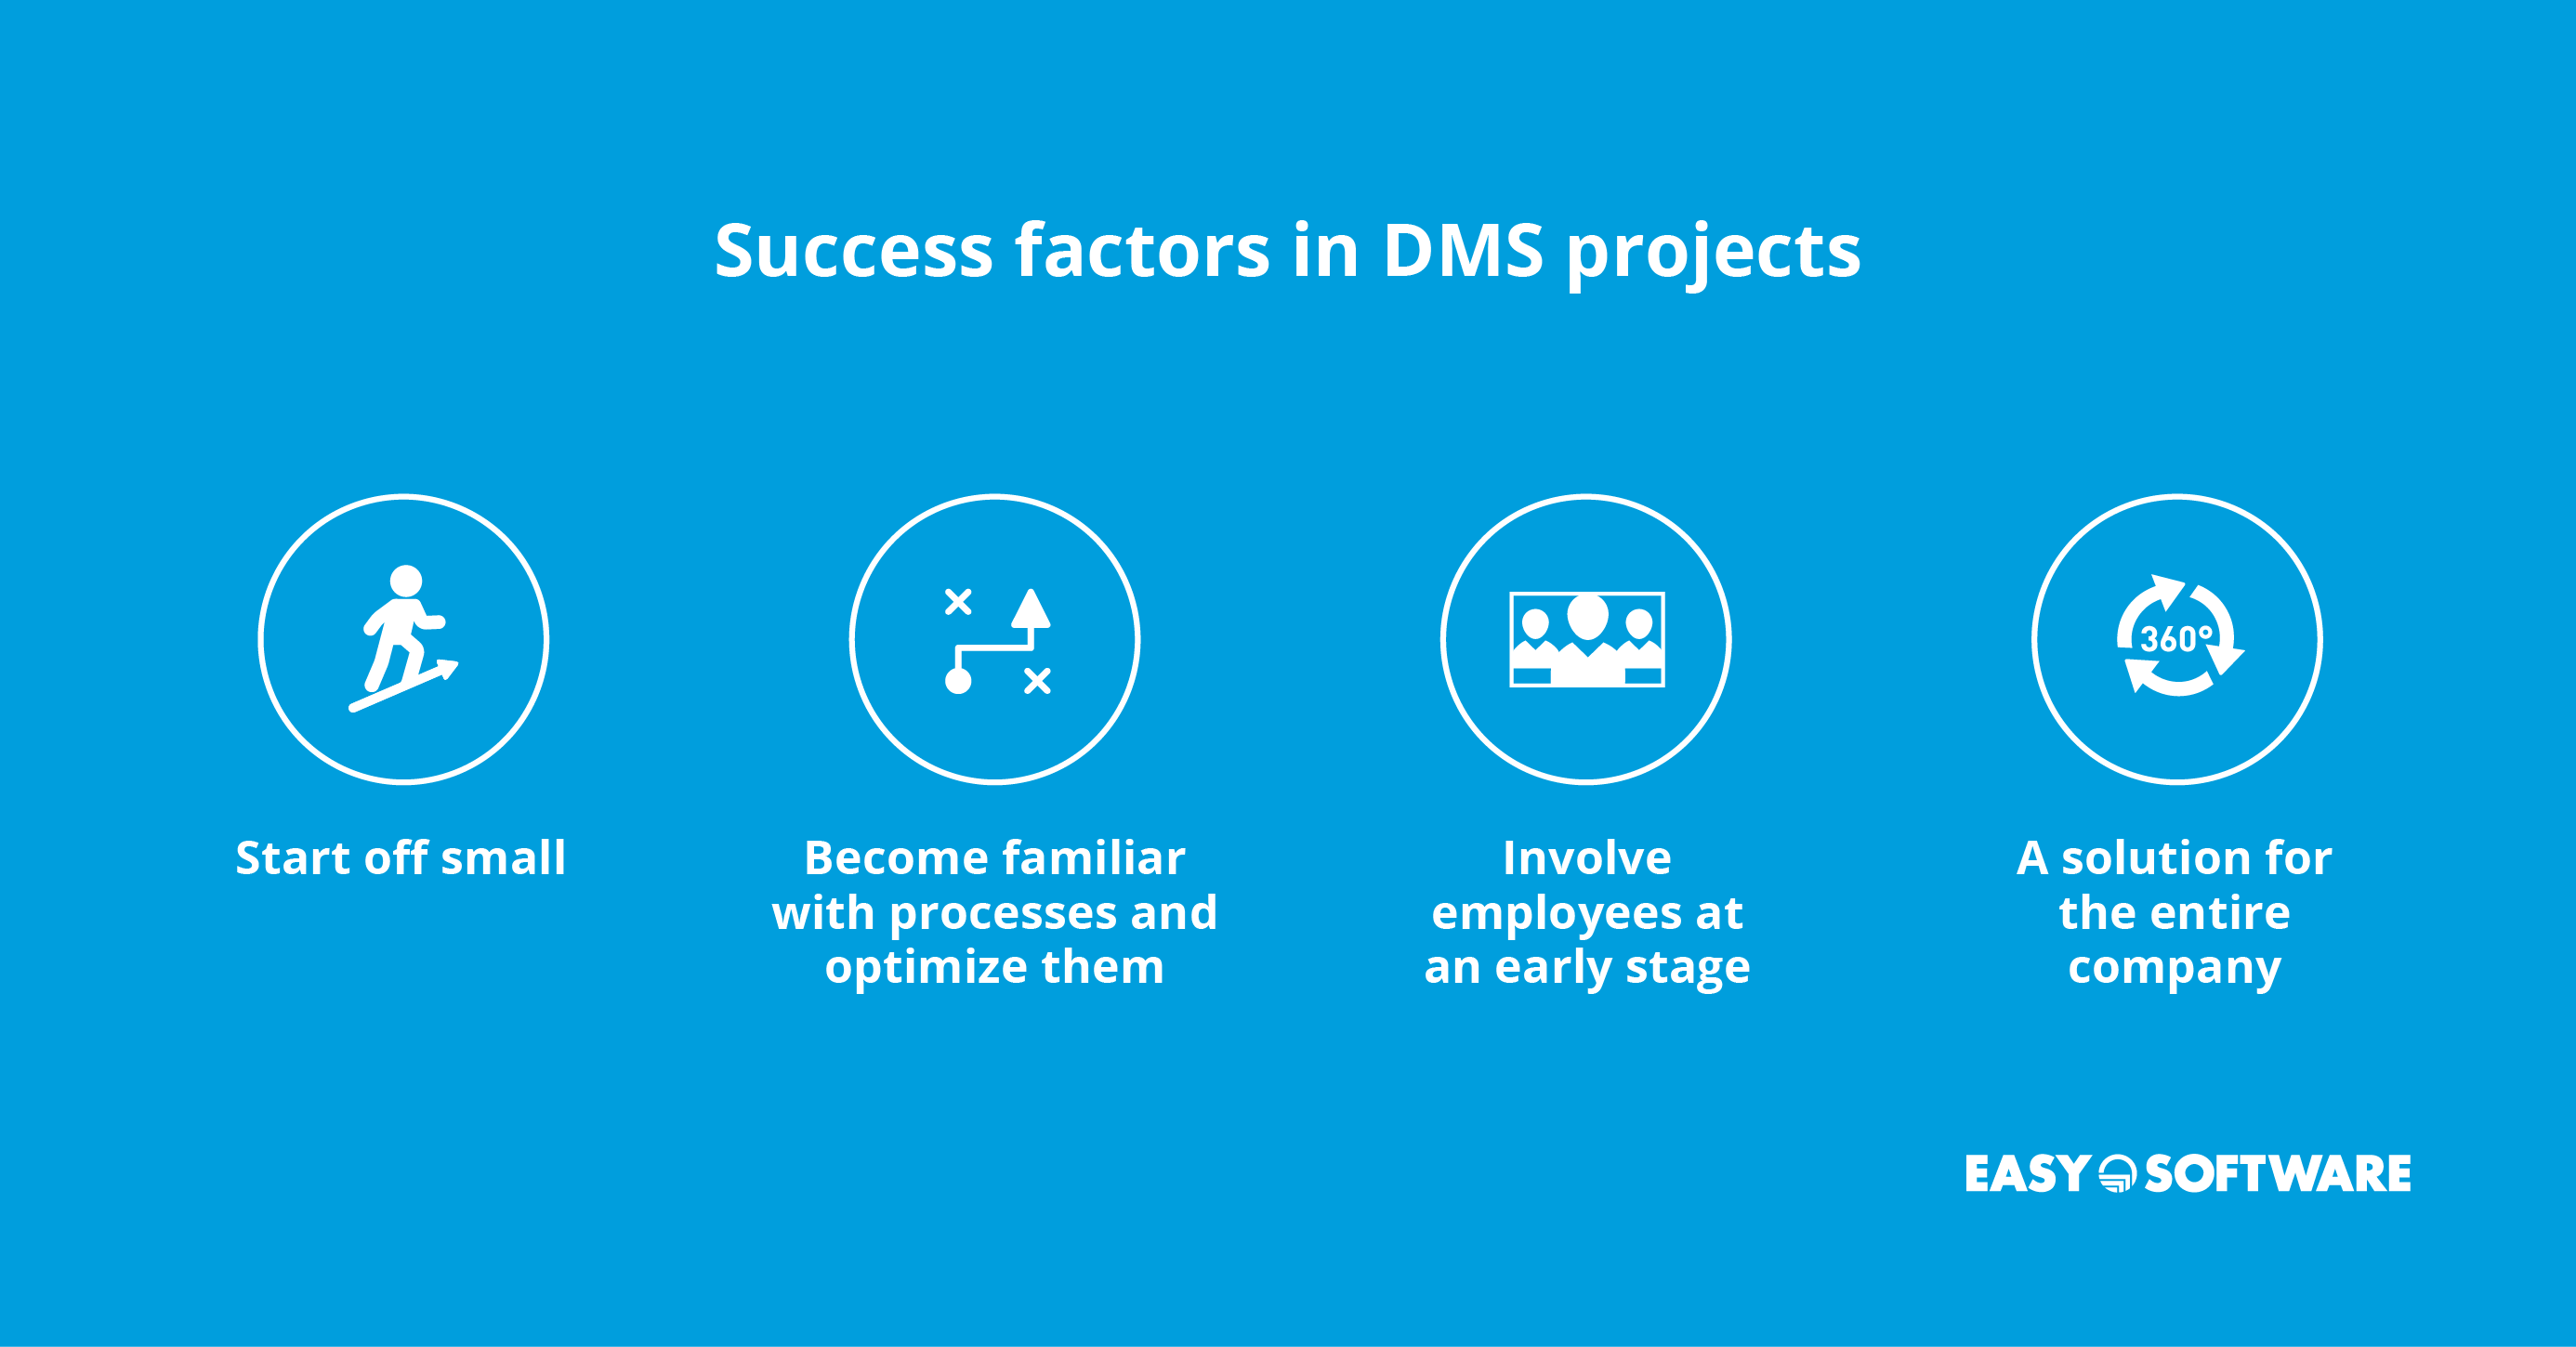 success factors in DMS projects